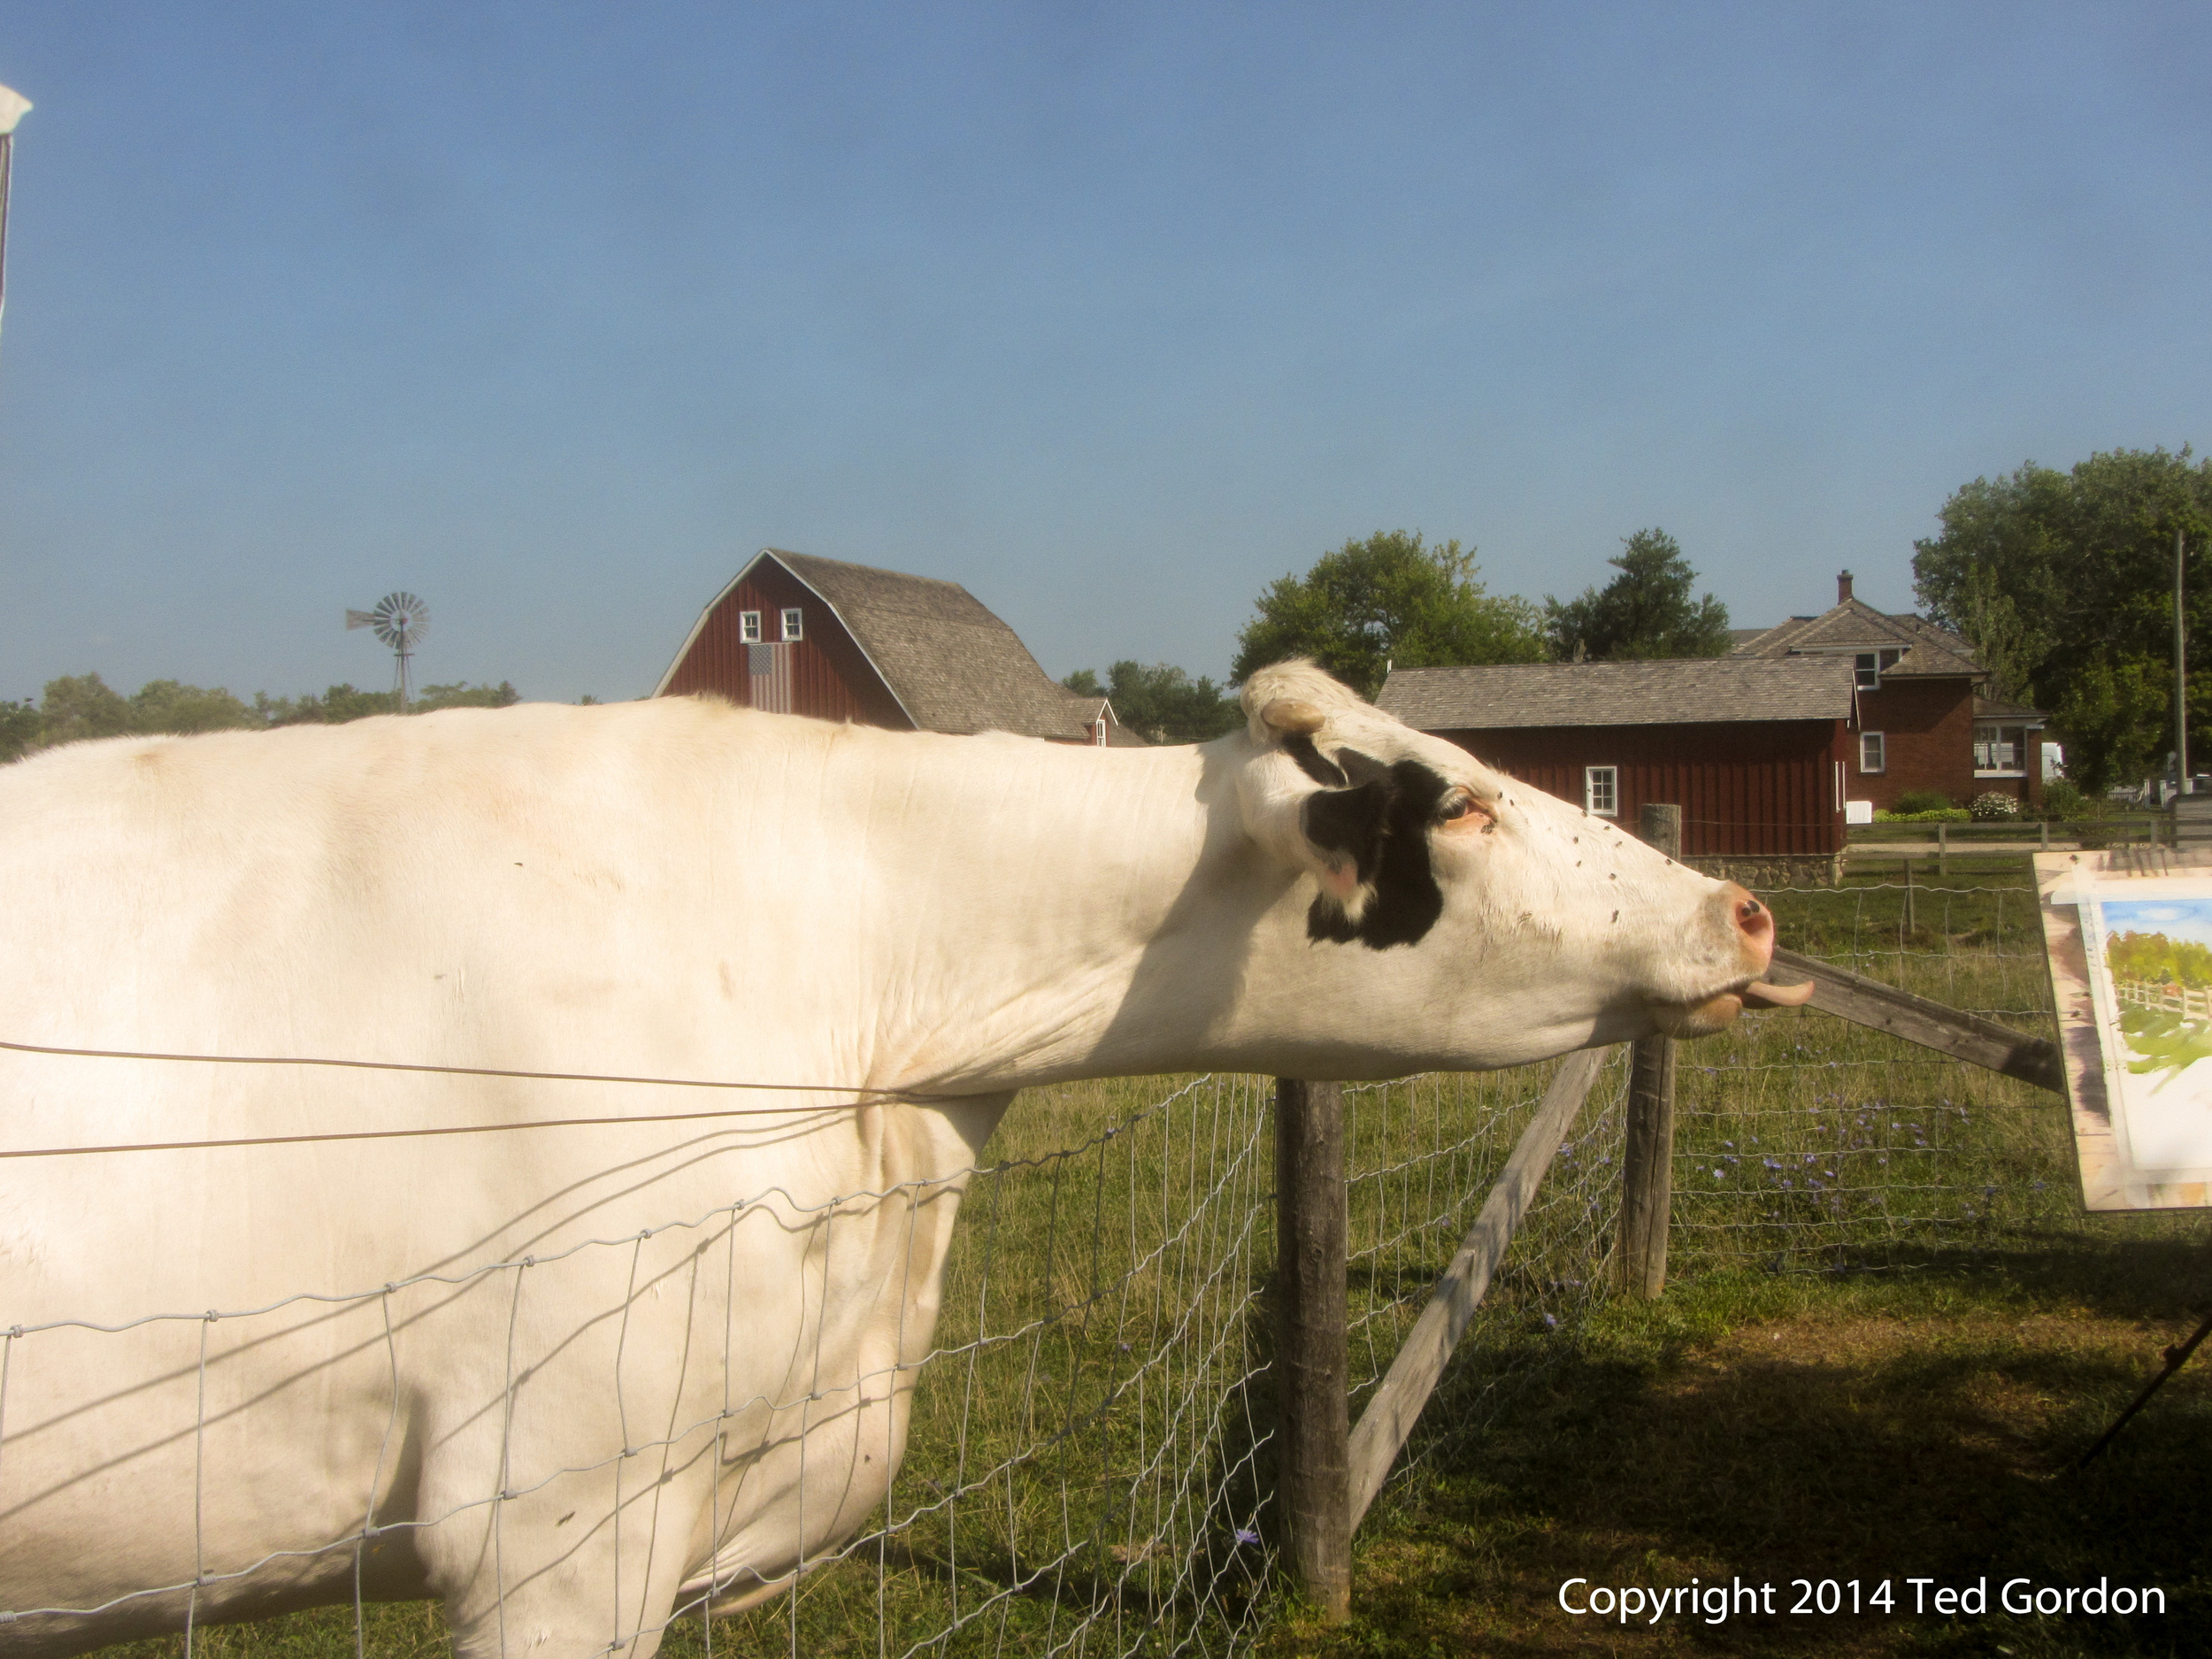 It's fun to meet people while painting plein air. This time we met a cow, who apparently had an appetite for art.